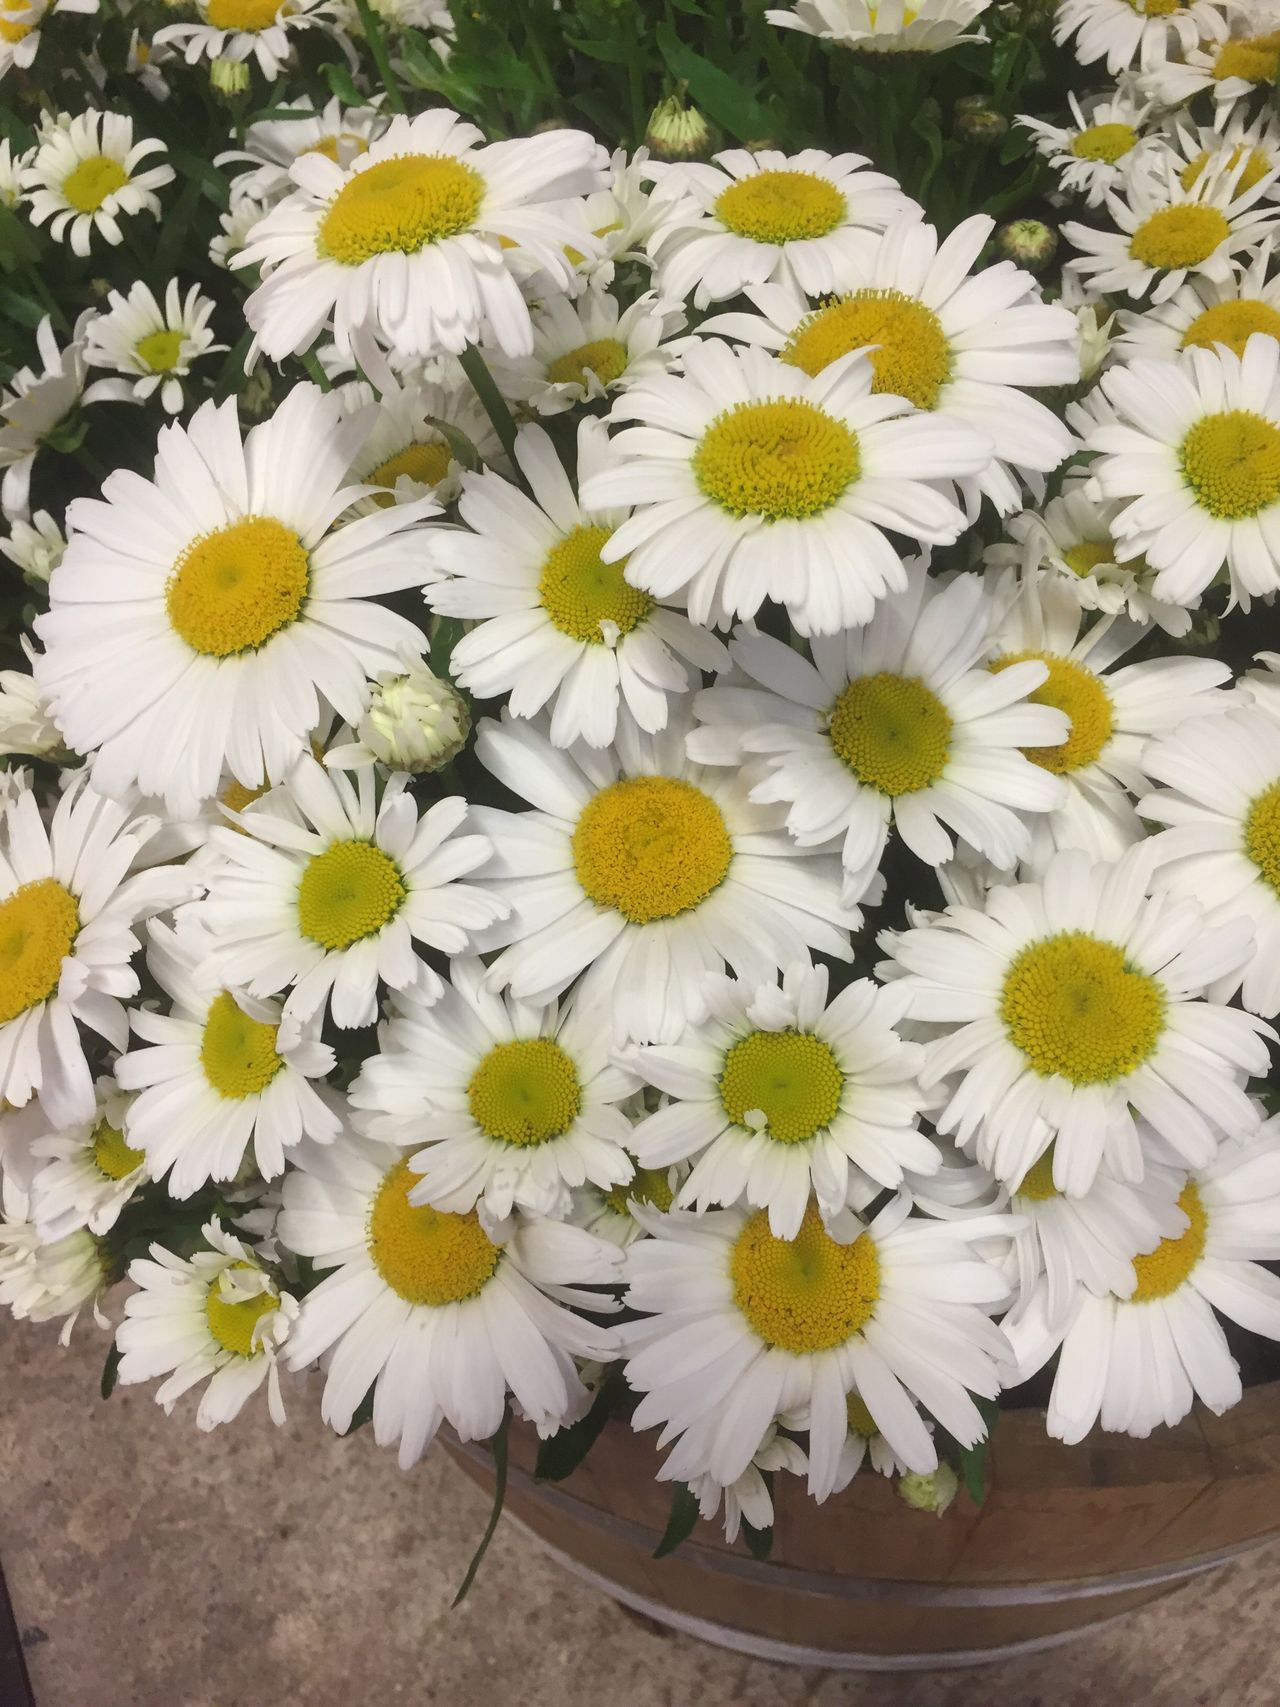 Daisies Flower Yellow Petal Fragility Freshness Flower Head Nature Beauty In Nature No People Day Outdoors Plant Blooming Close-up Daisy Flower Arrangement